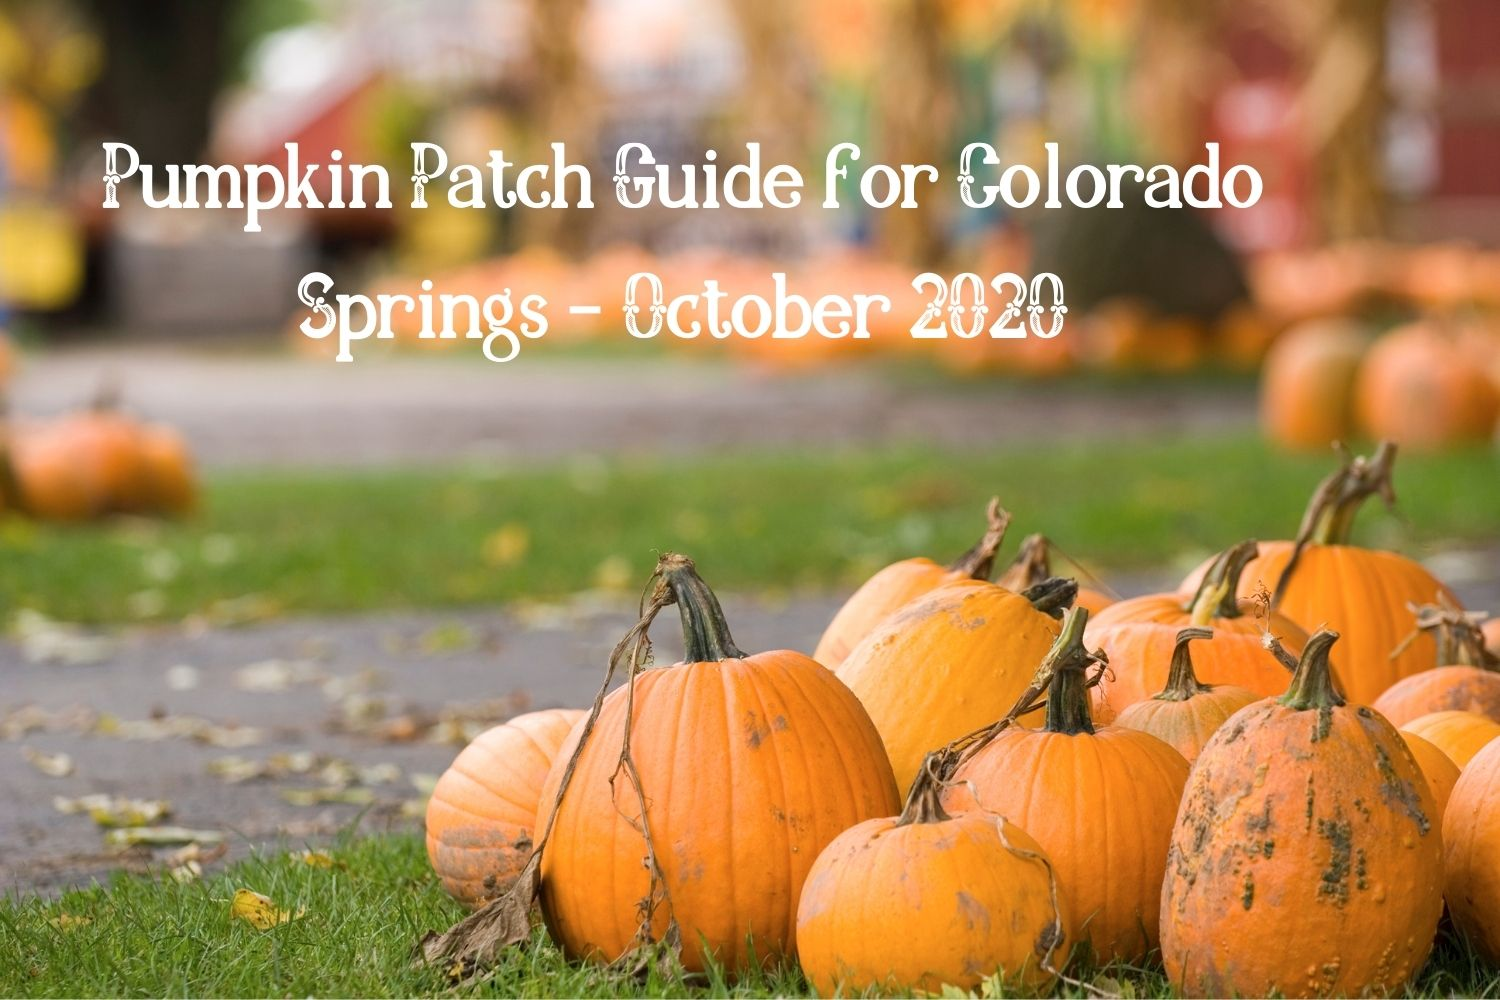 Pumpkin Path Guide for Colorado Springs– October 2020